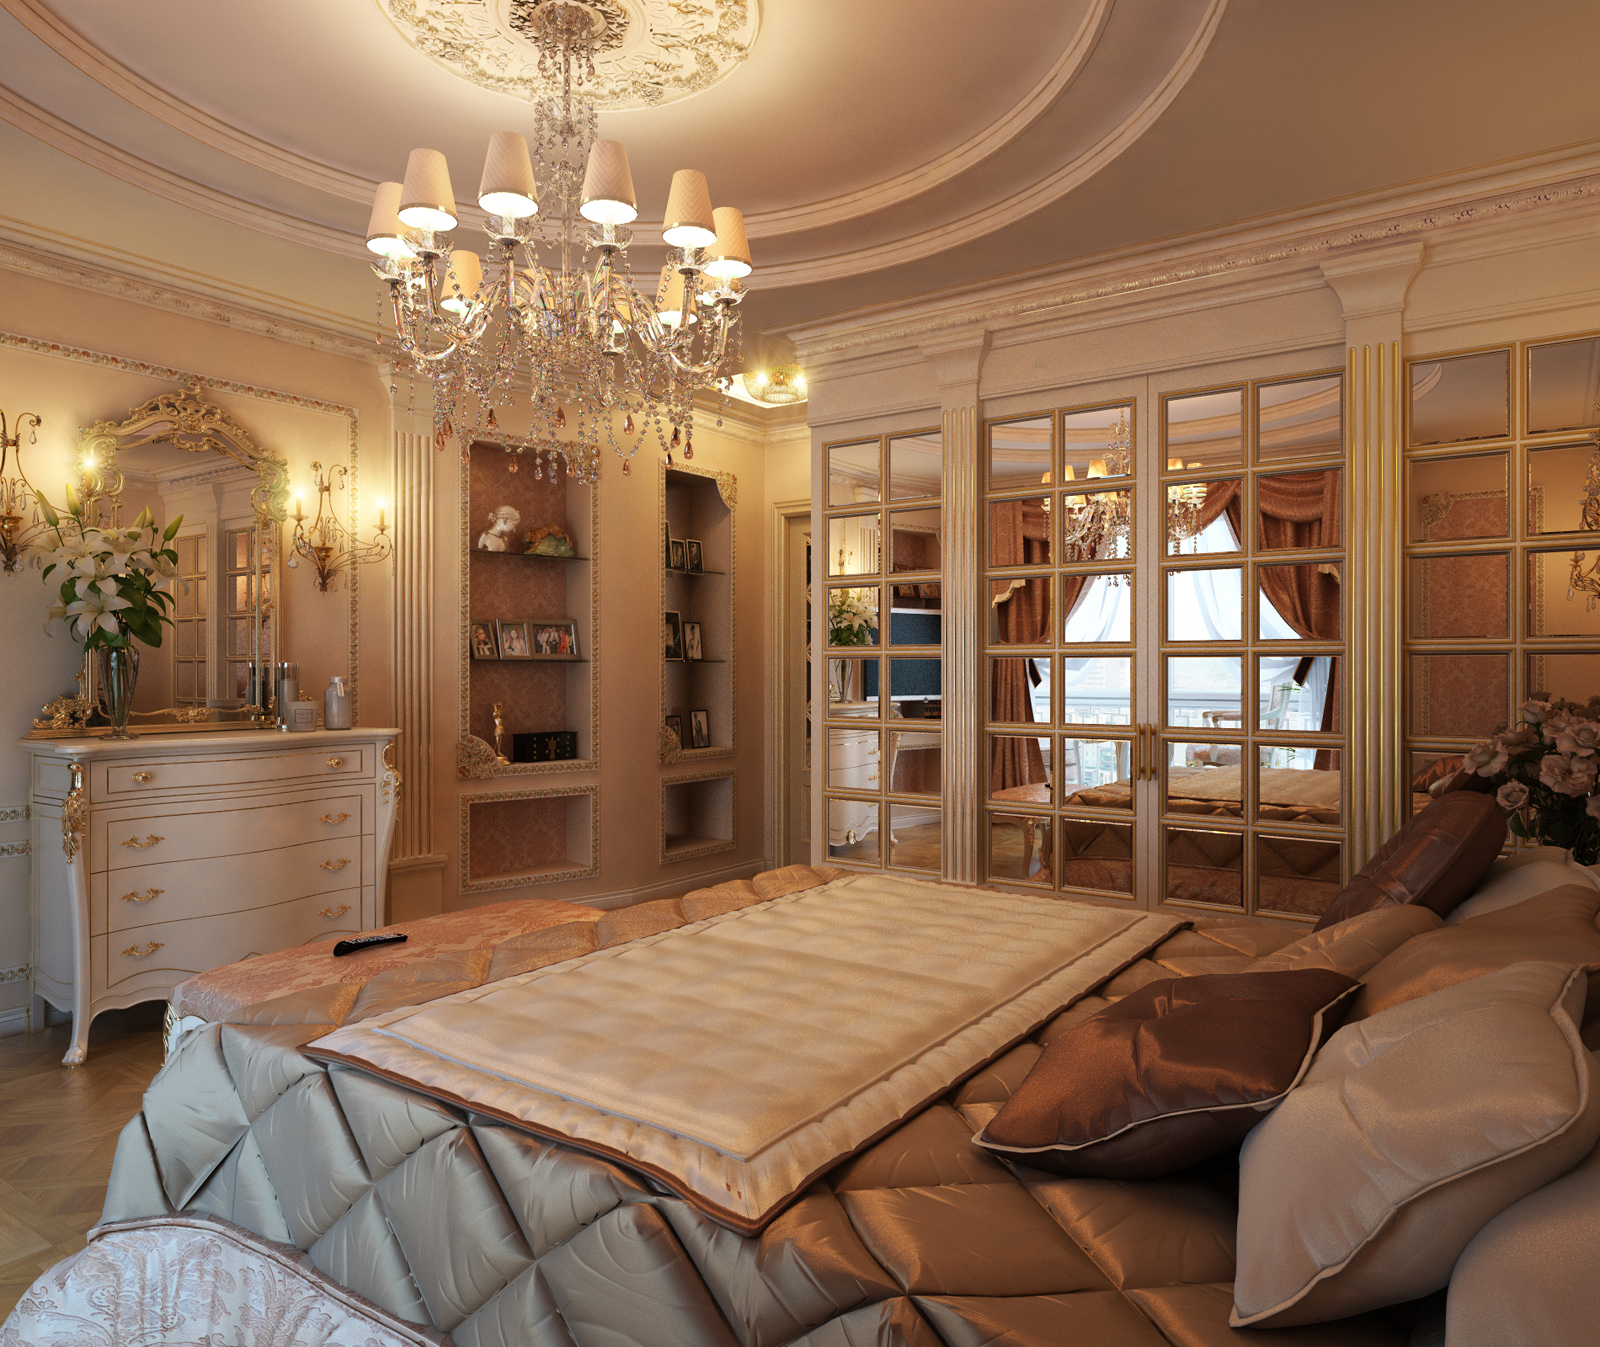 Royal touch In Bedroom